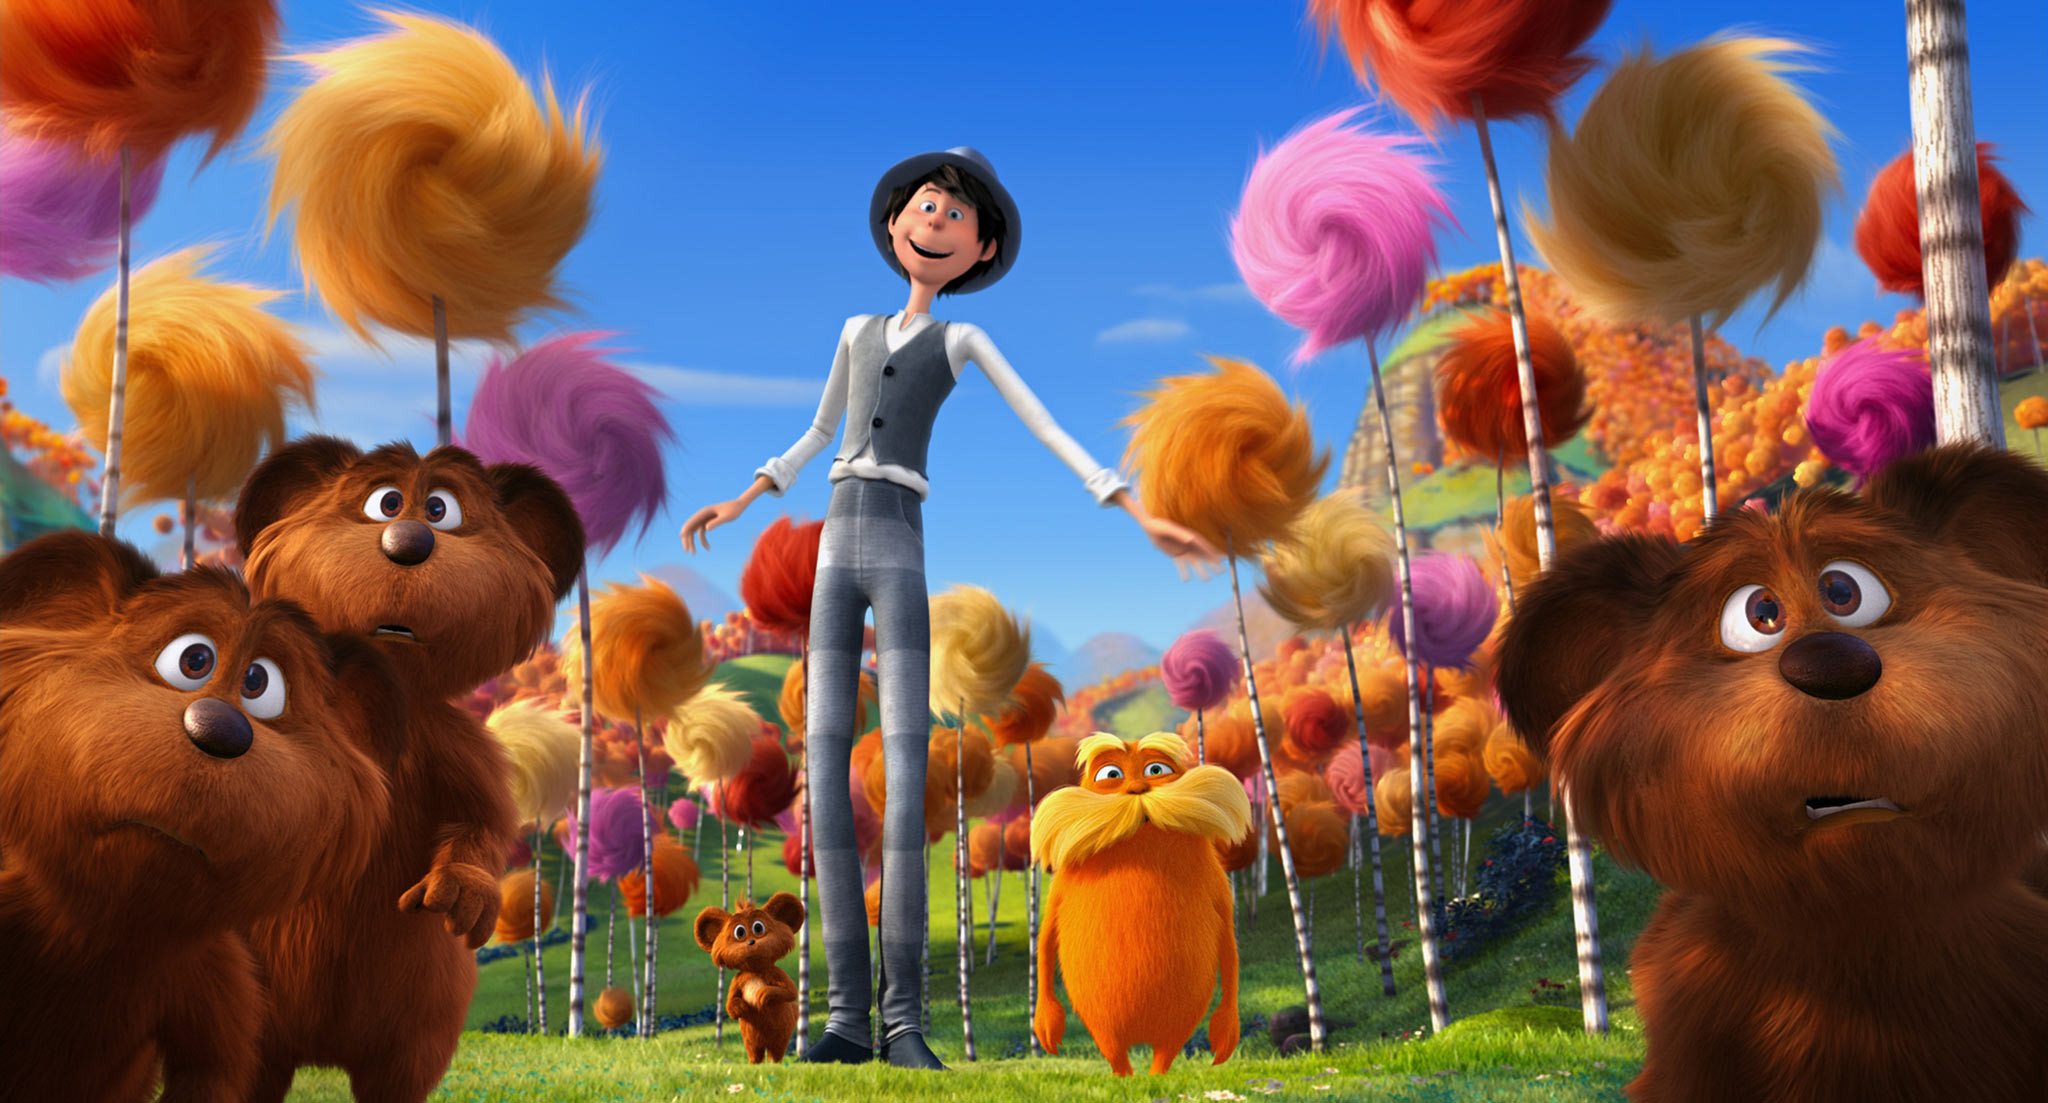 Res: 2048x1103, Dr Seuss The Lorax Wallpaper 2 - 2048 X 1103